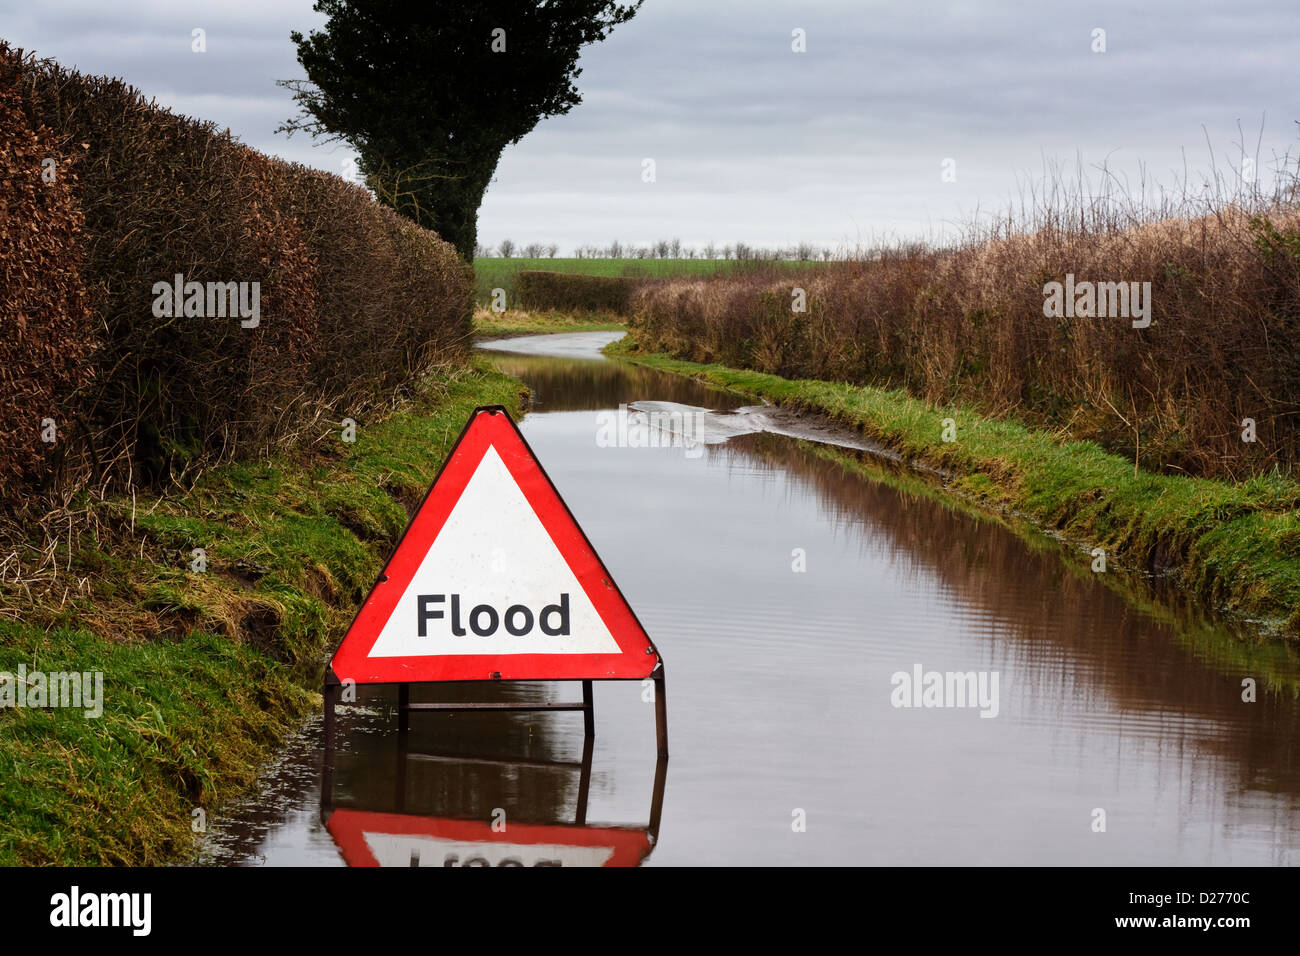 Flood warning sign on a flooded country road showing adverse driving conditions - Stock Image